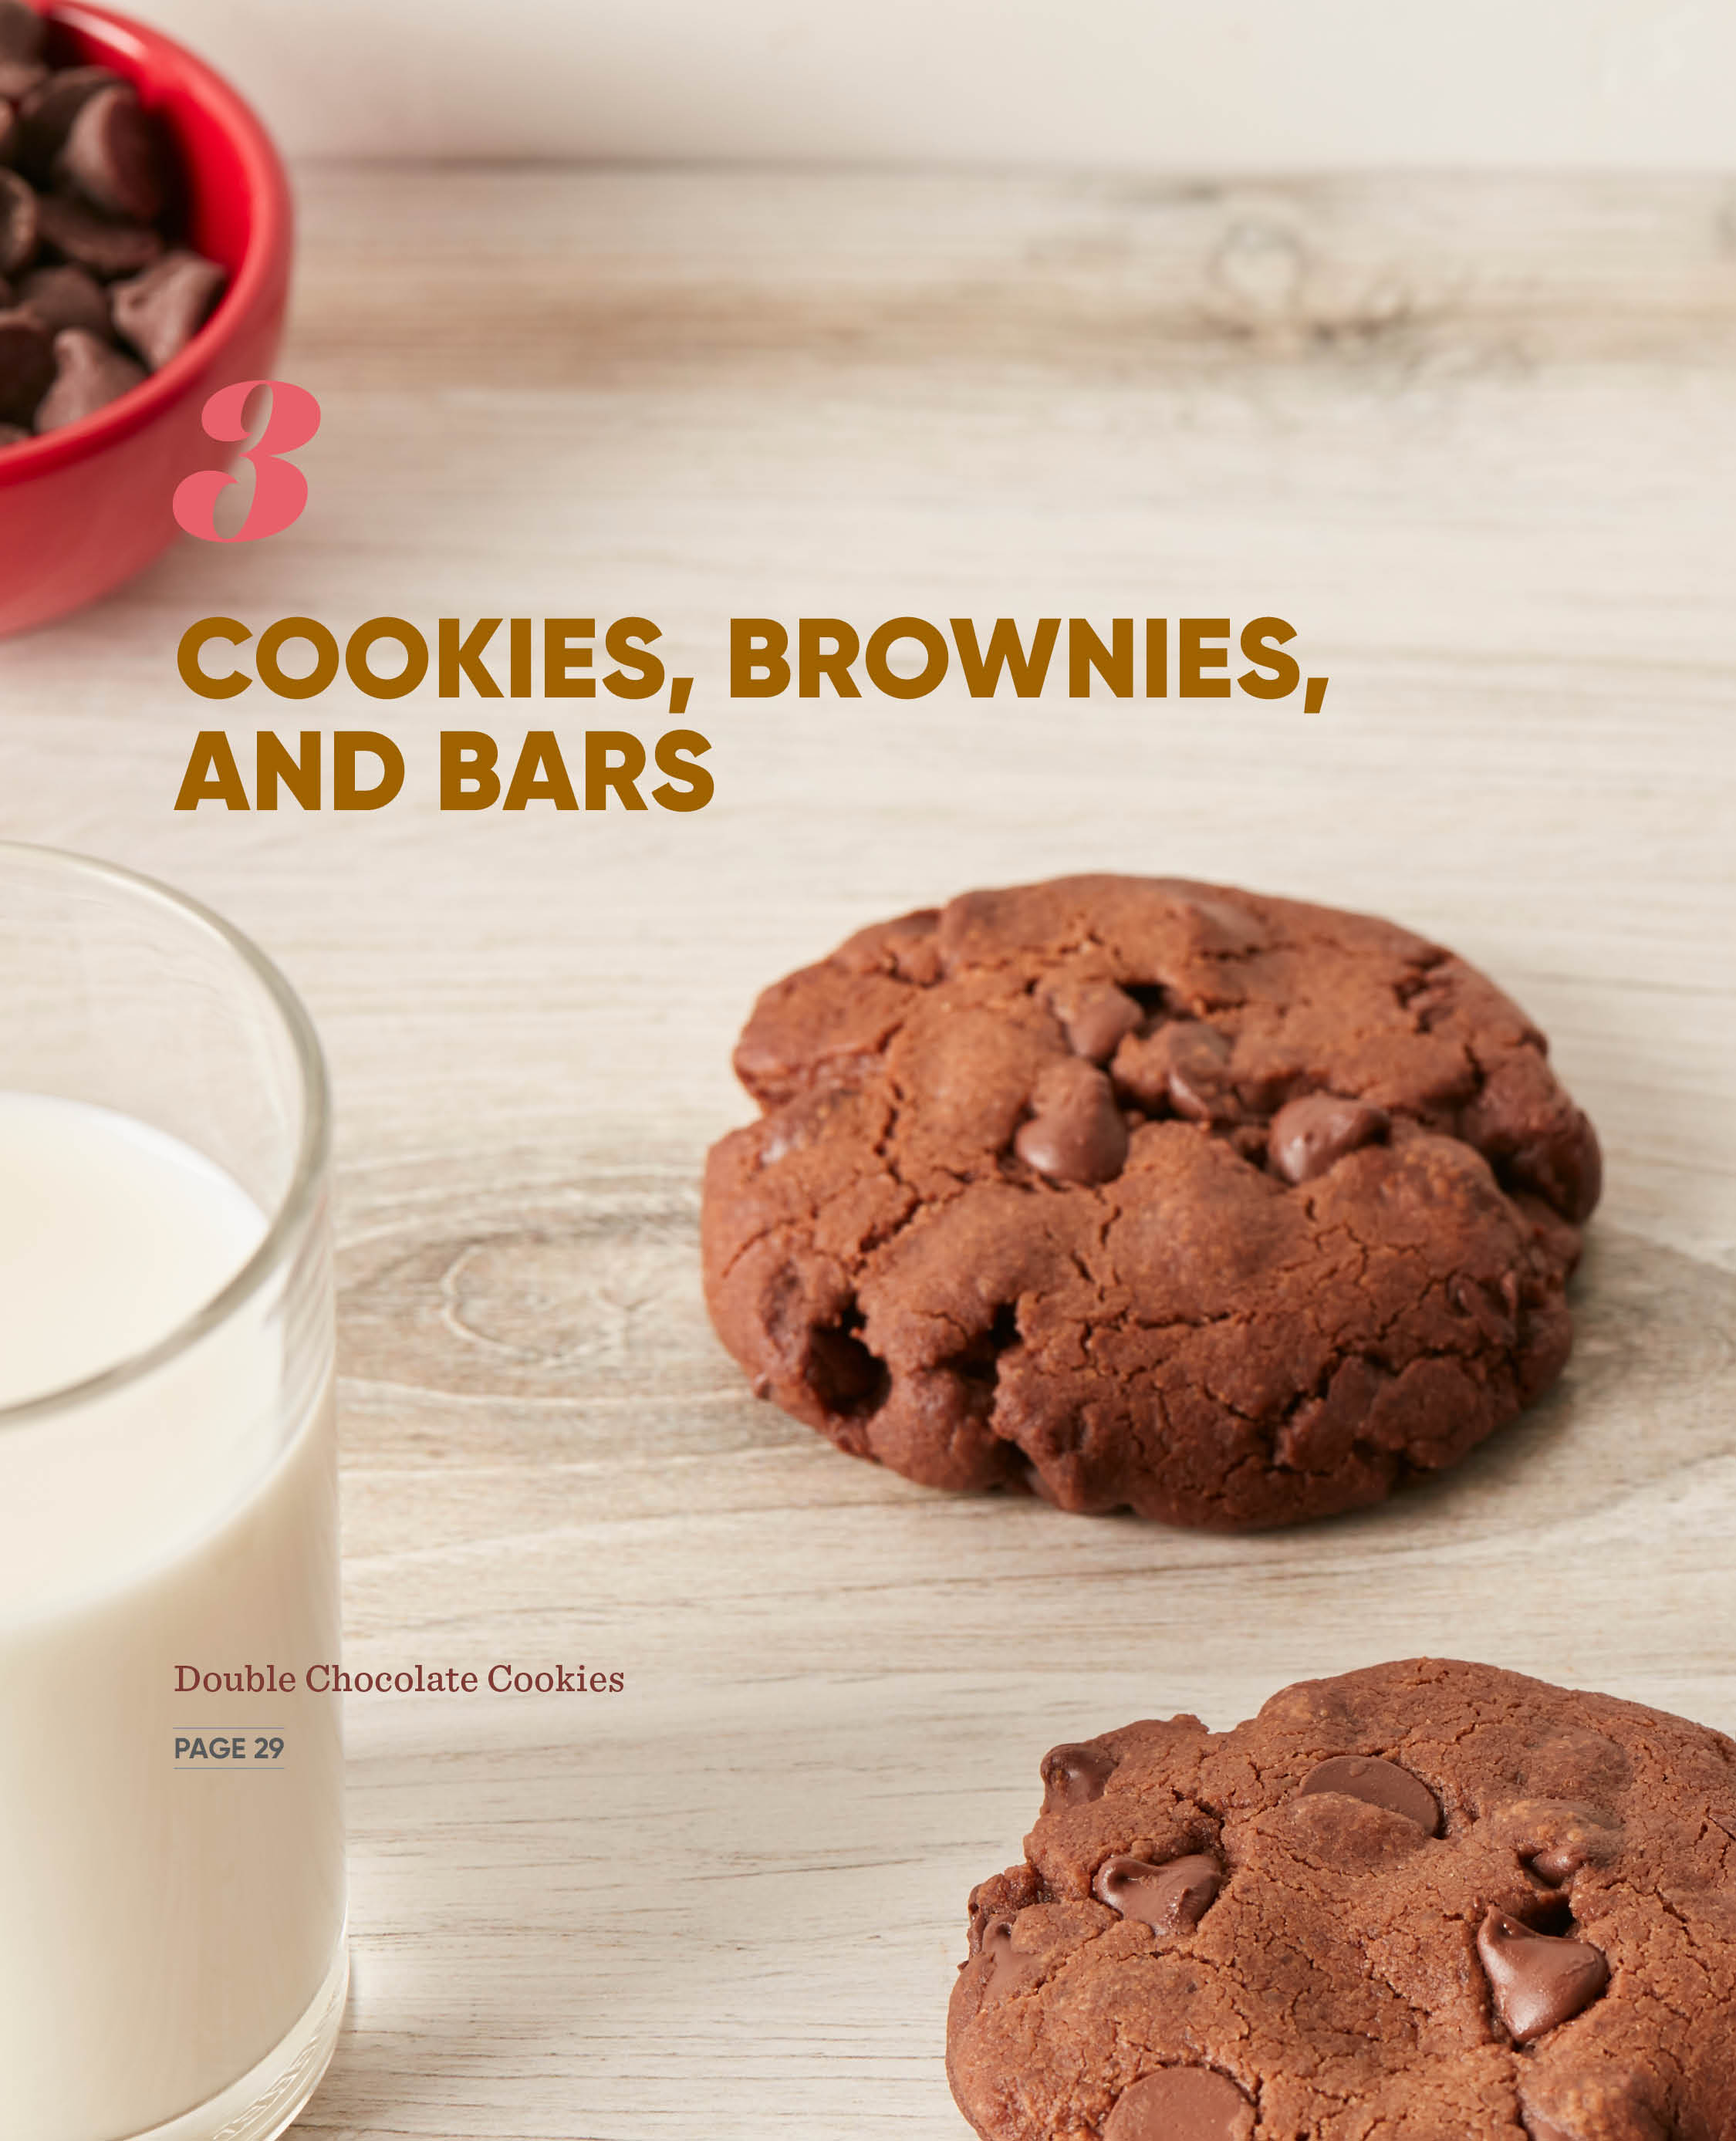 Chapter photo for cookies, brownies, and bars in the cookbook